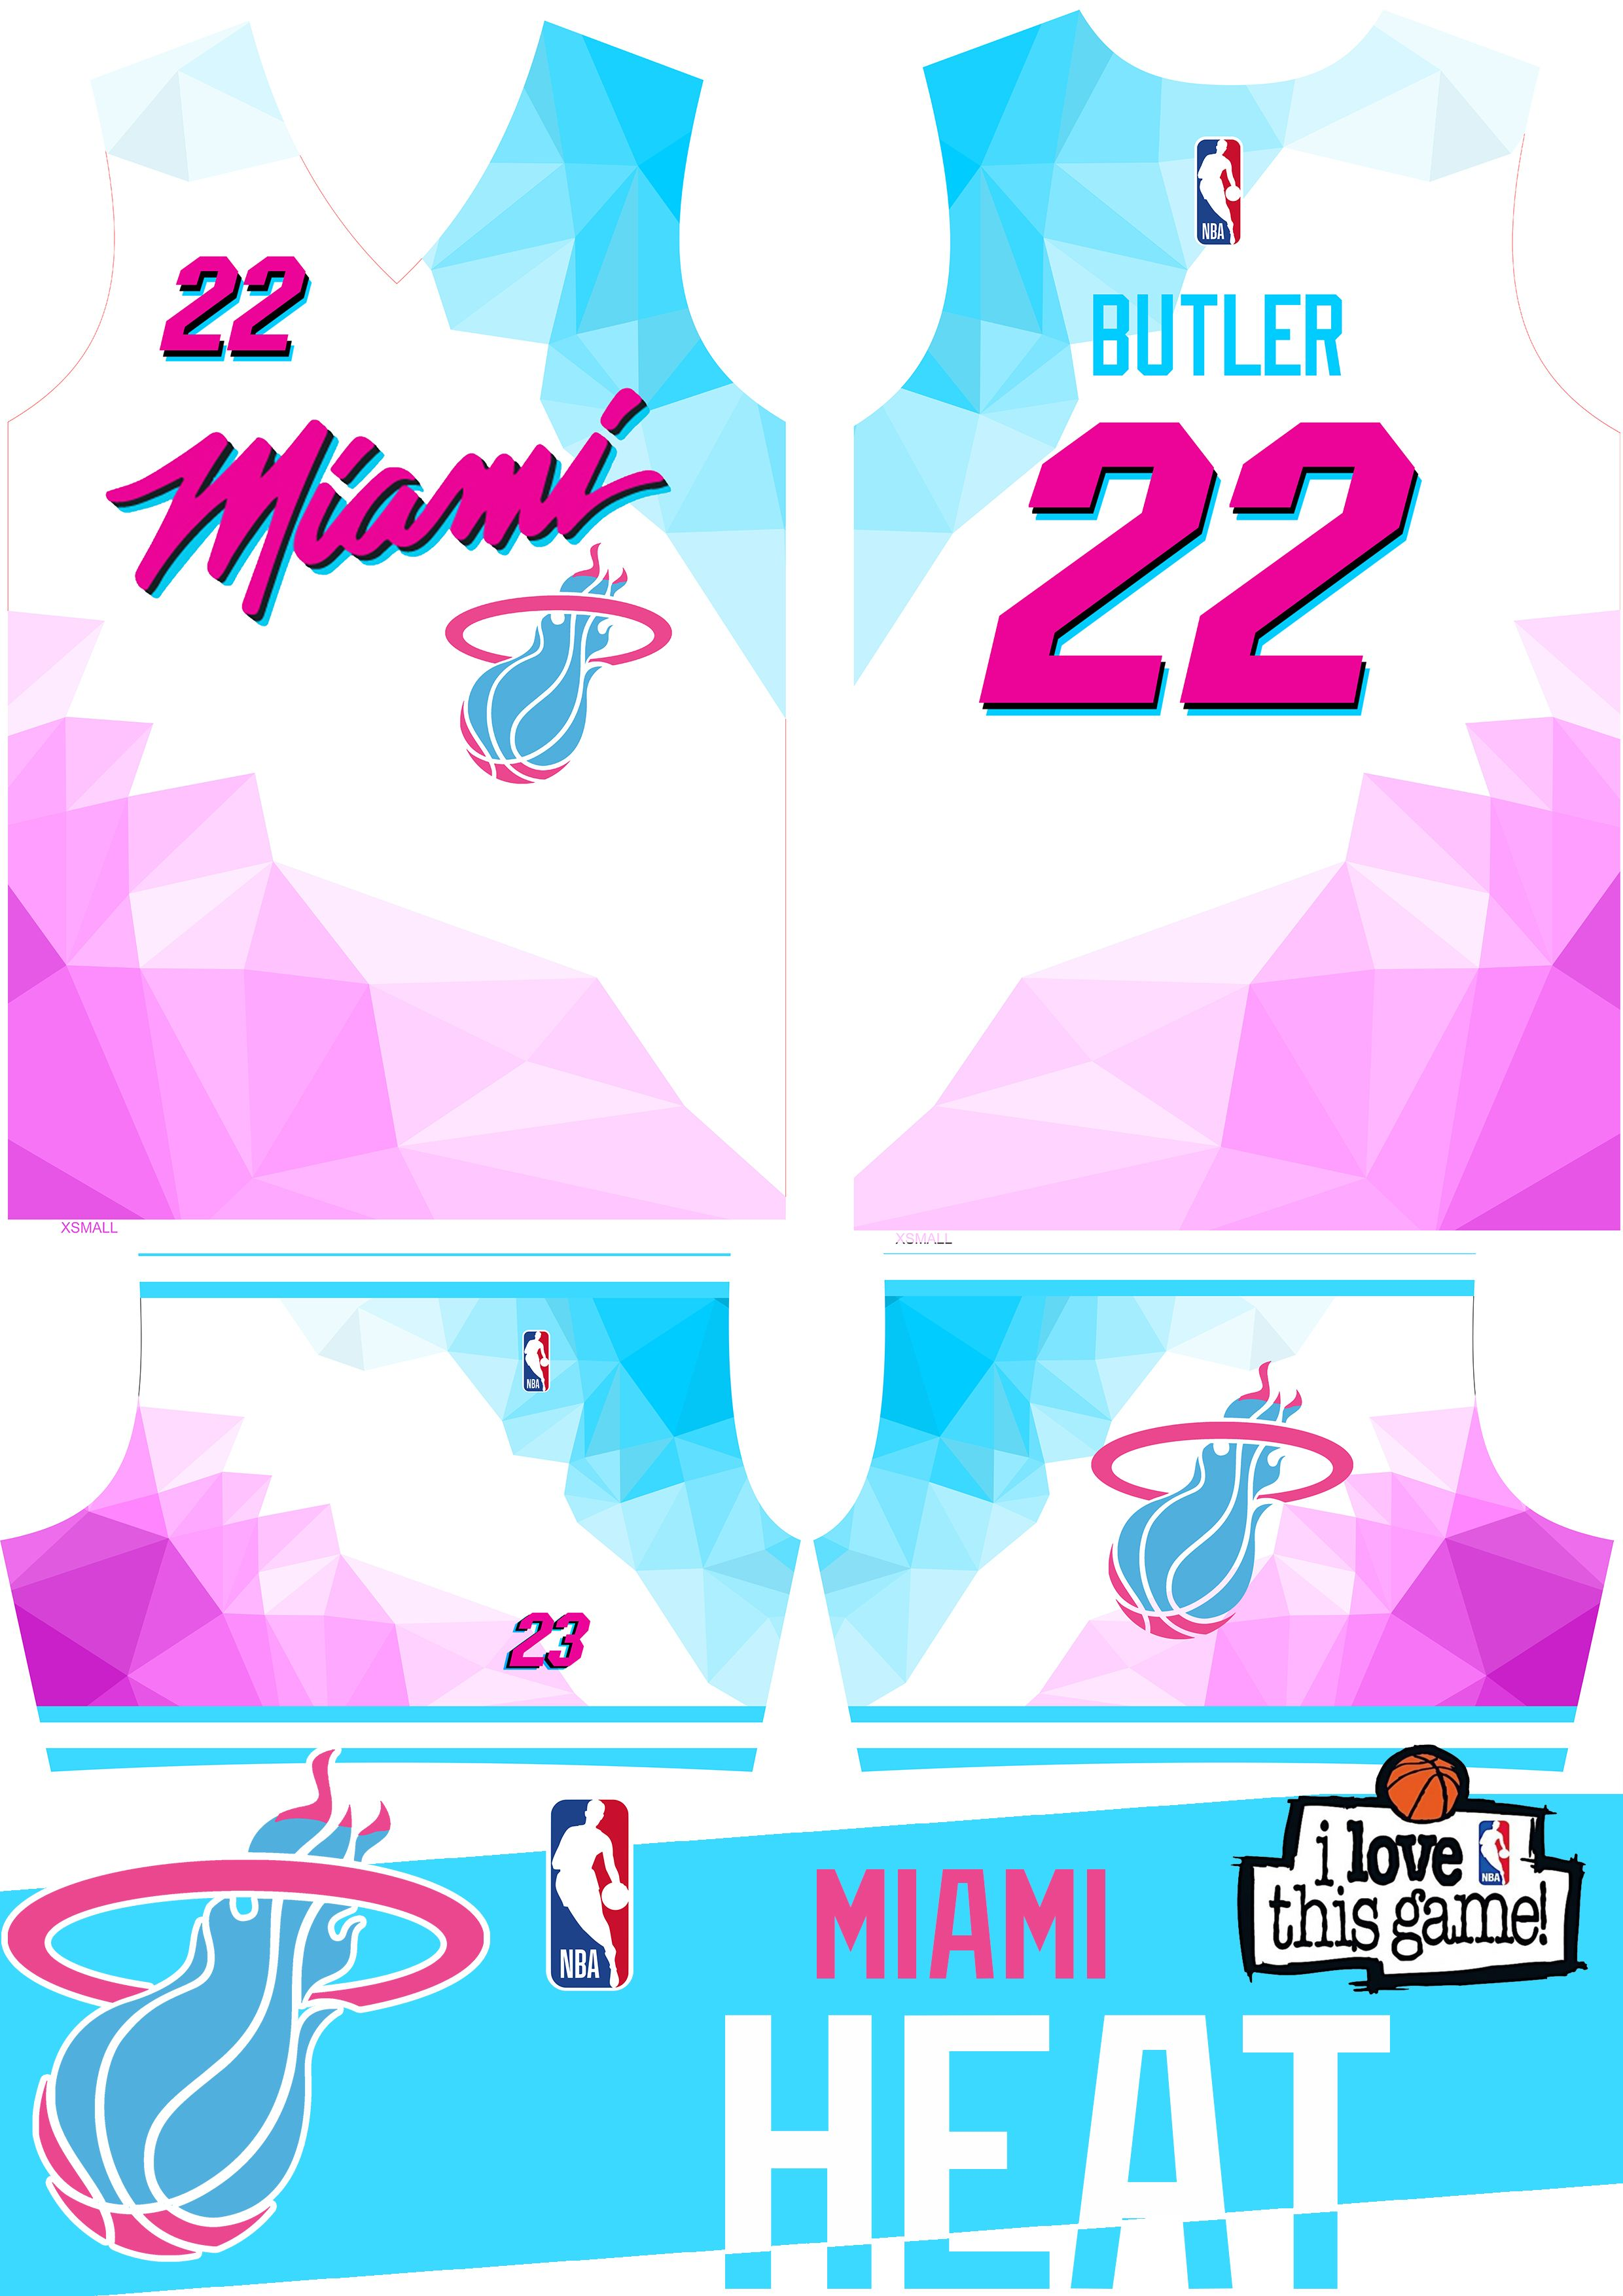 Jimmy Butler 22 Miami Heat Vice Wave On Behance In 2020 Miami Heat Lebron James Miami Heat Nba Miami Heat